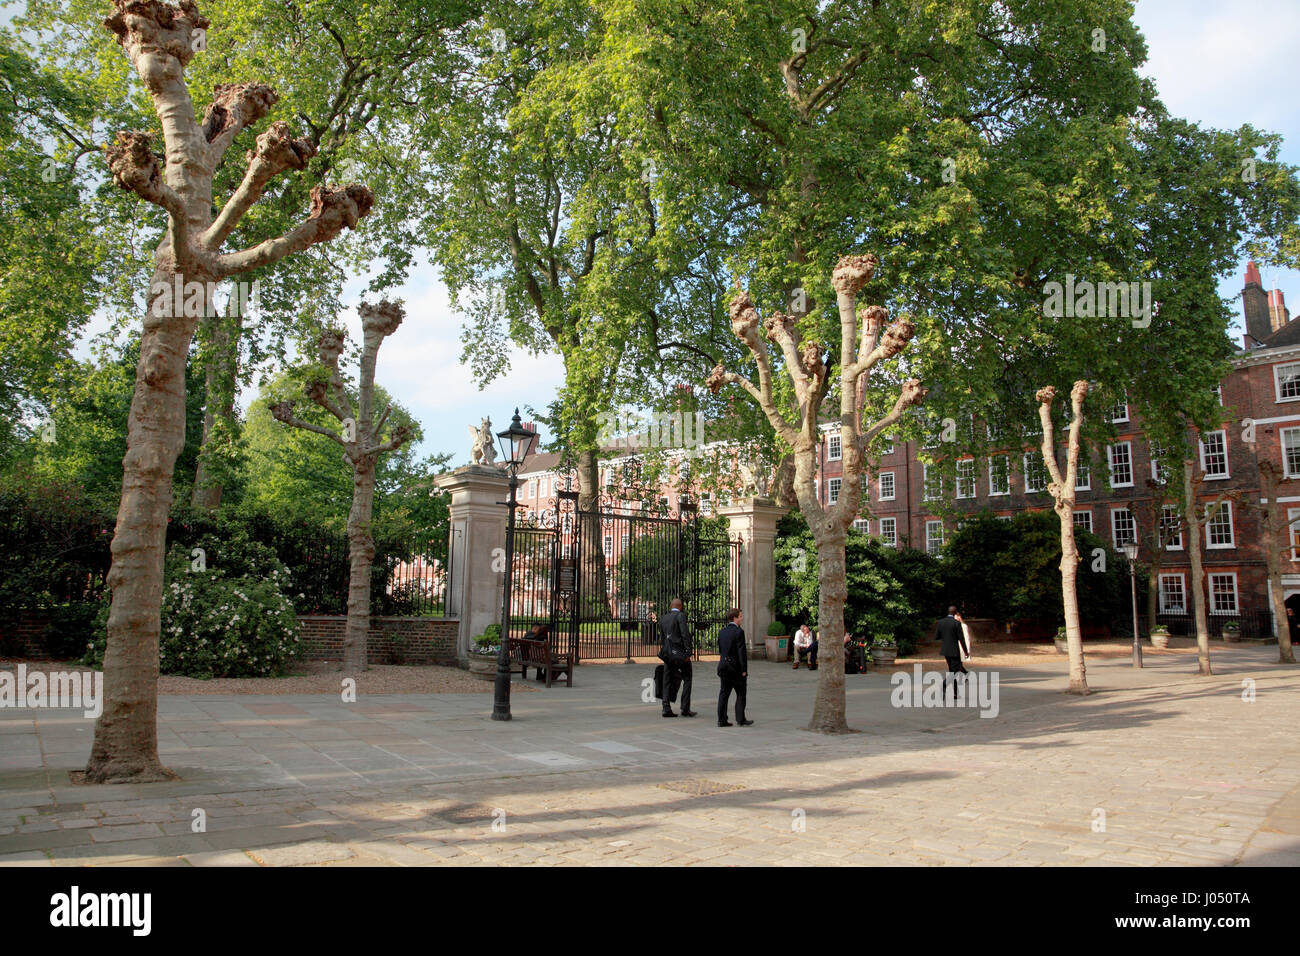 Grays Inn Square and gardens, Camden, London - Stock Image